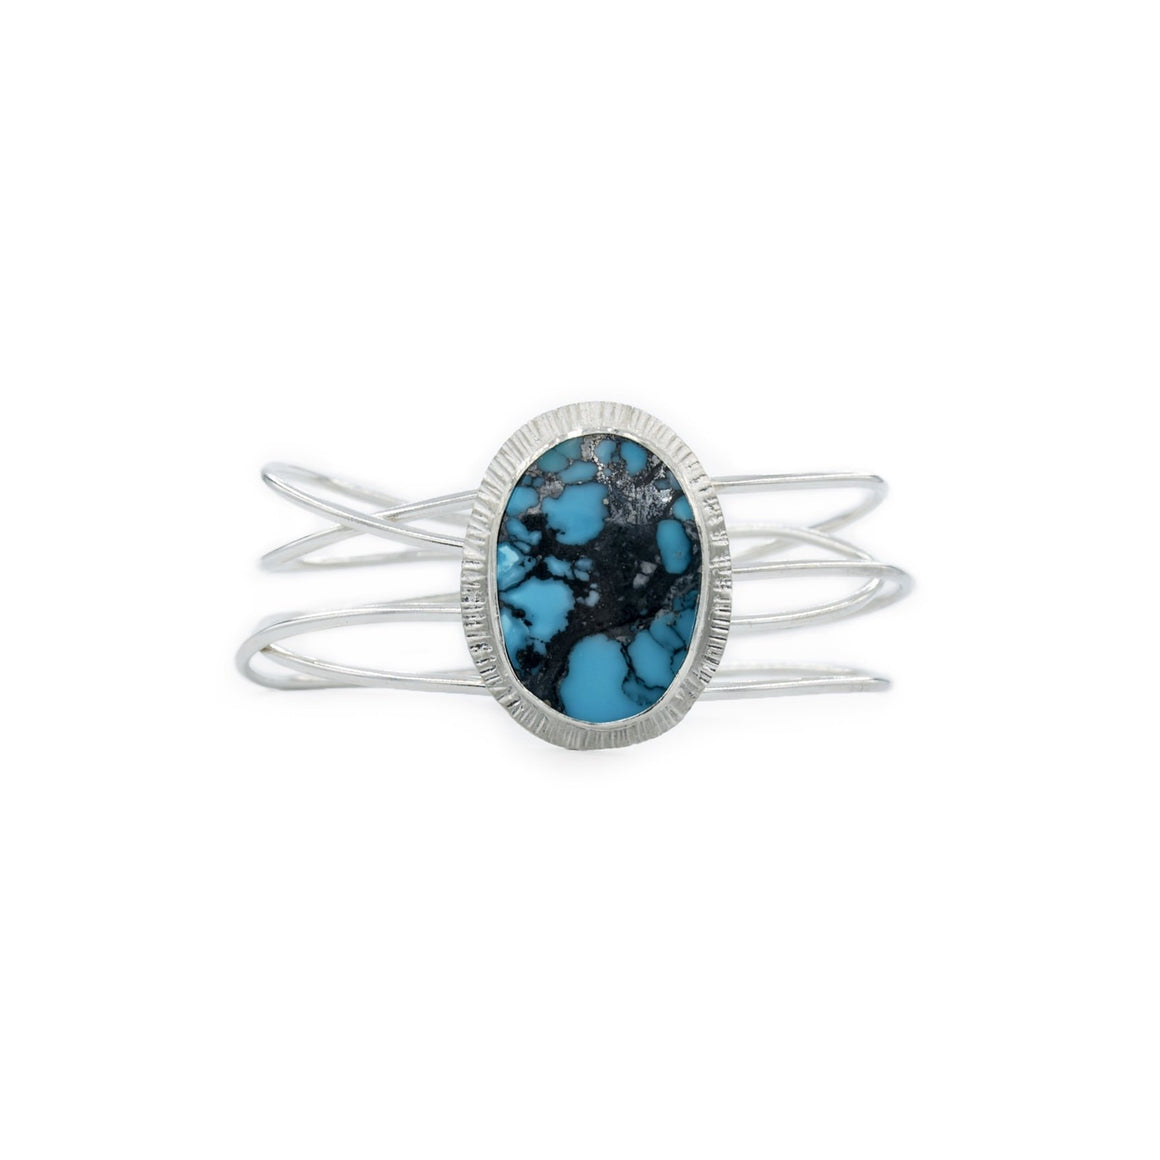 Turquoise and Silver Nest Cuff by Original Sin Jewelry